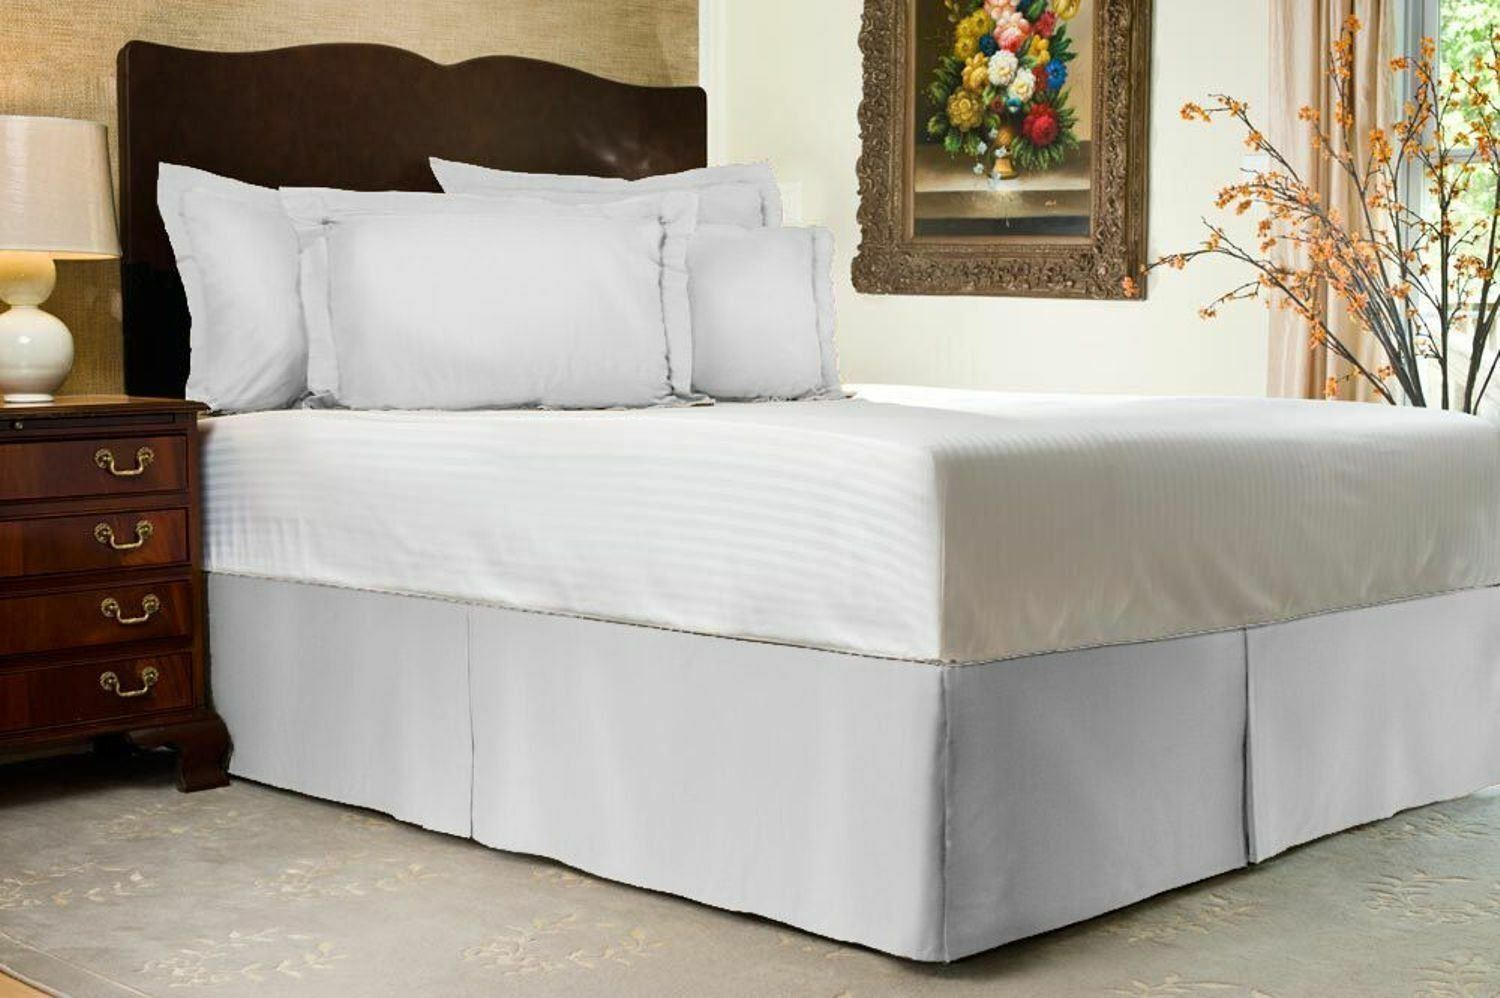 Bed Skirt Select Drop Length All Us Size White Solid 1000 Tc Egyptian Cotton 1 Of 1free Shipping See More